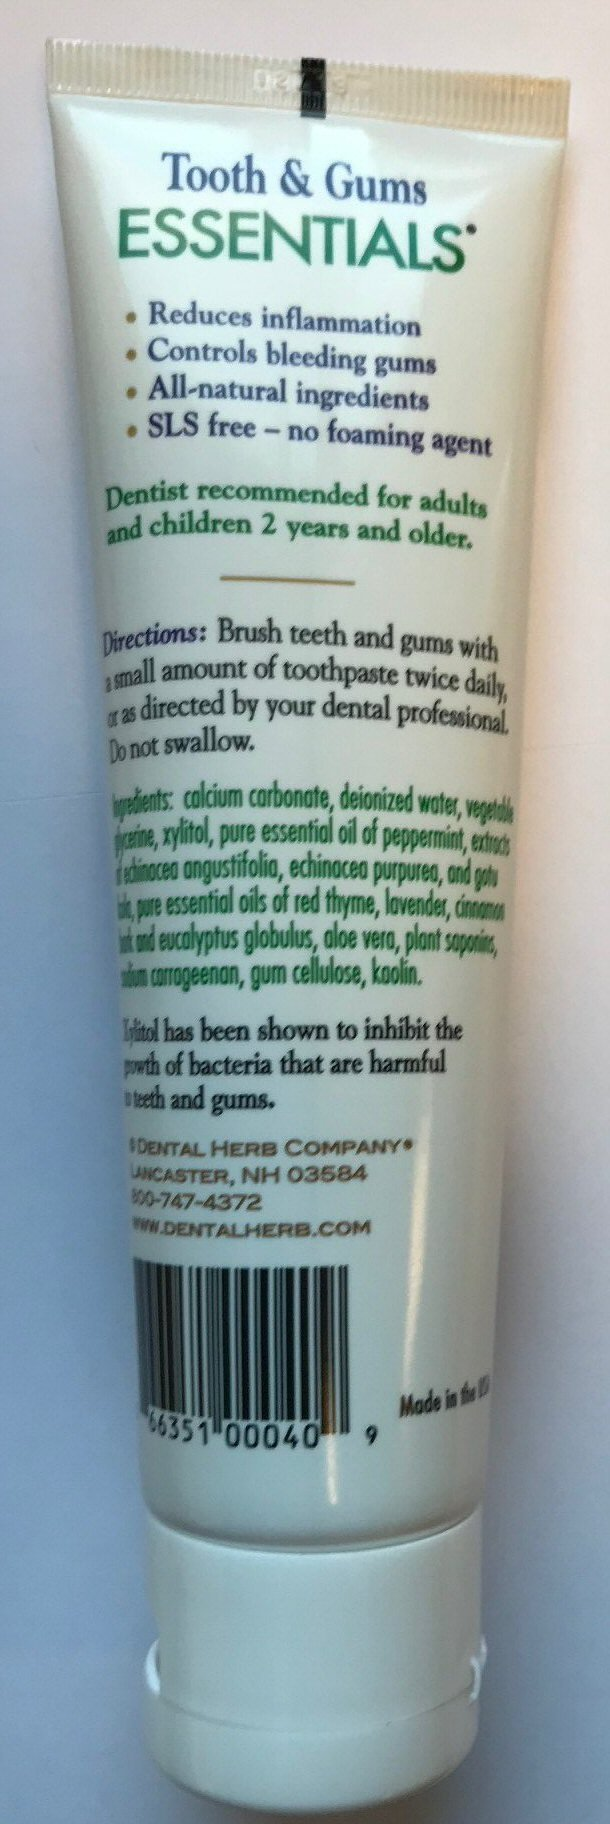 Dental Herb Company Tooth & Gums NEW Essentials Toothpaste